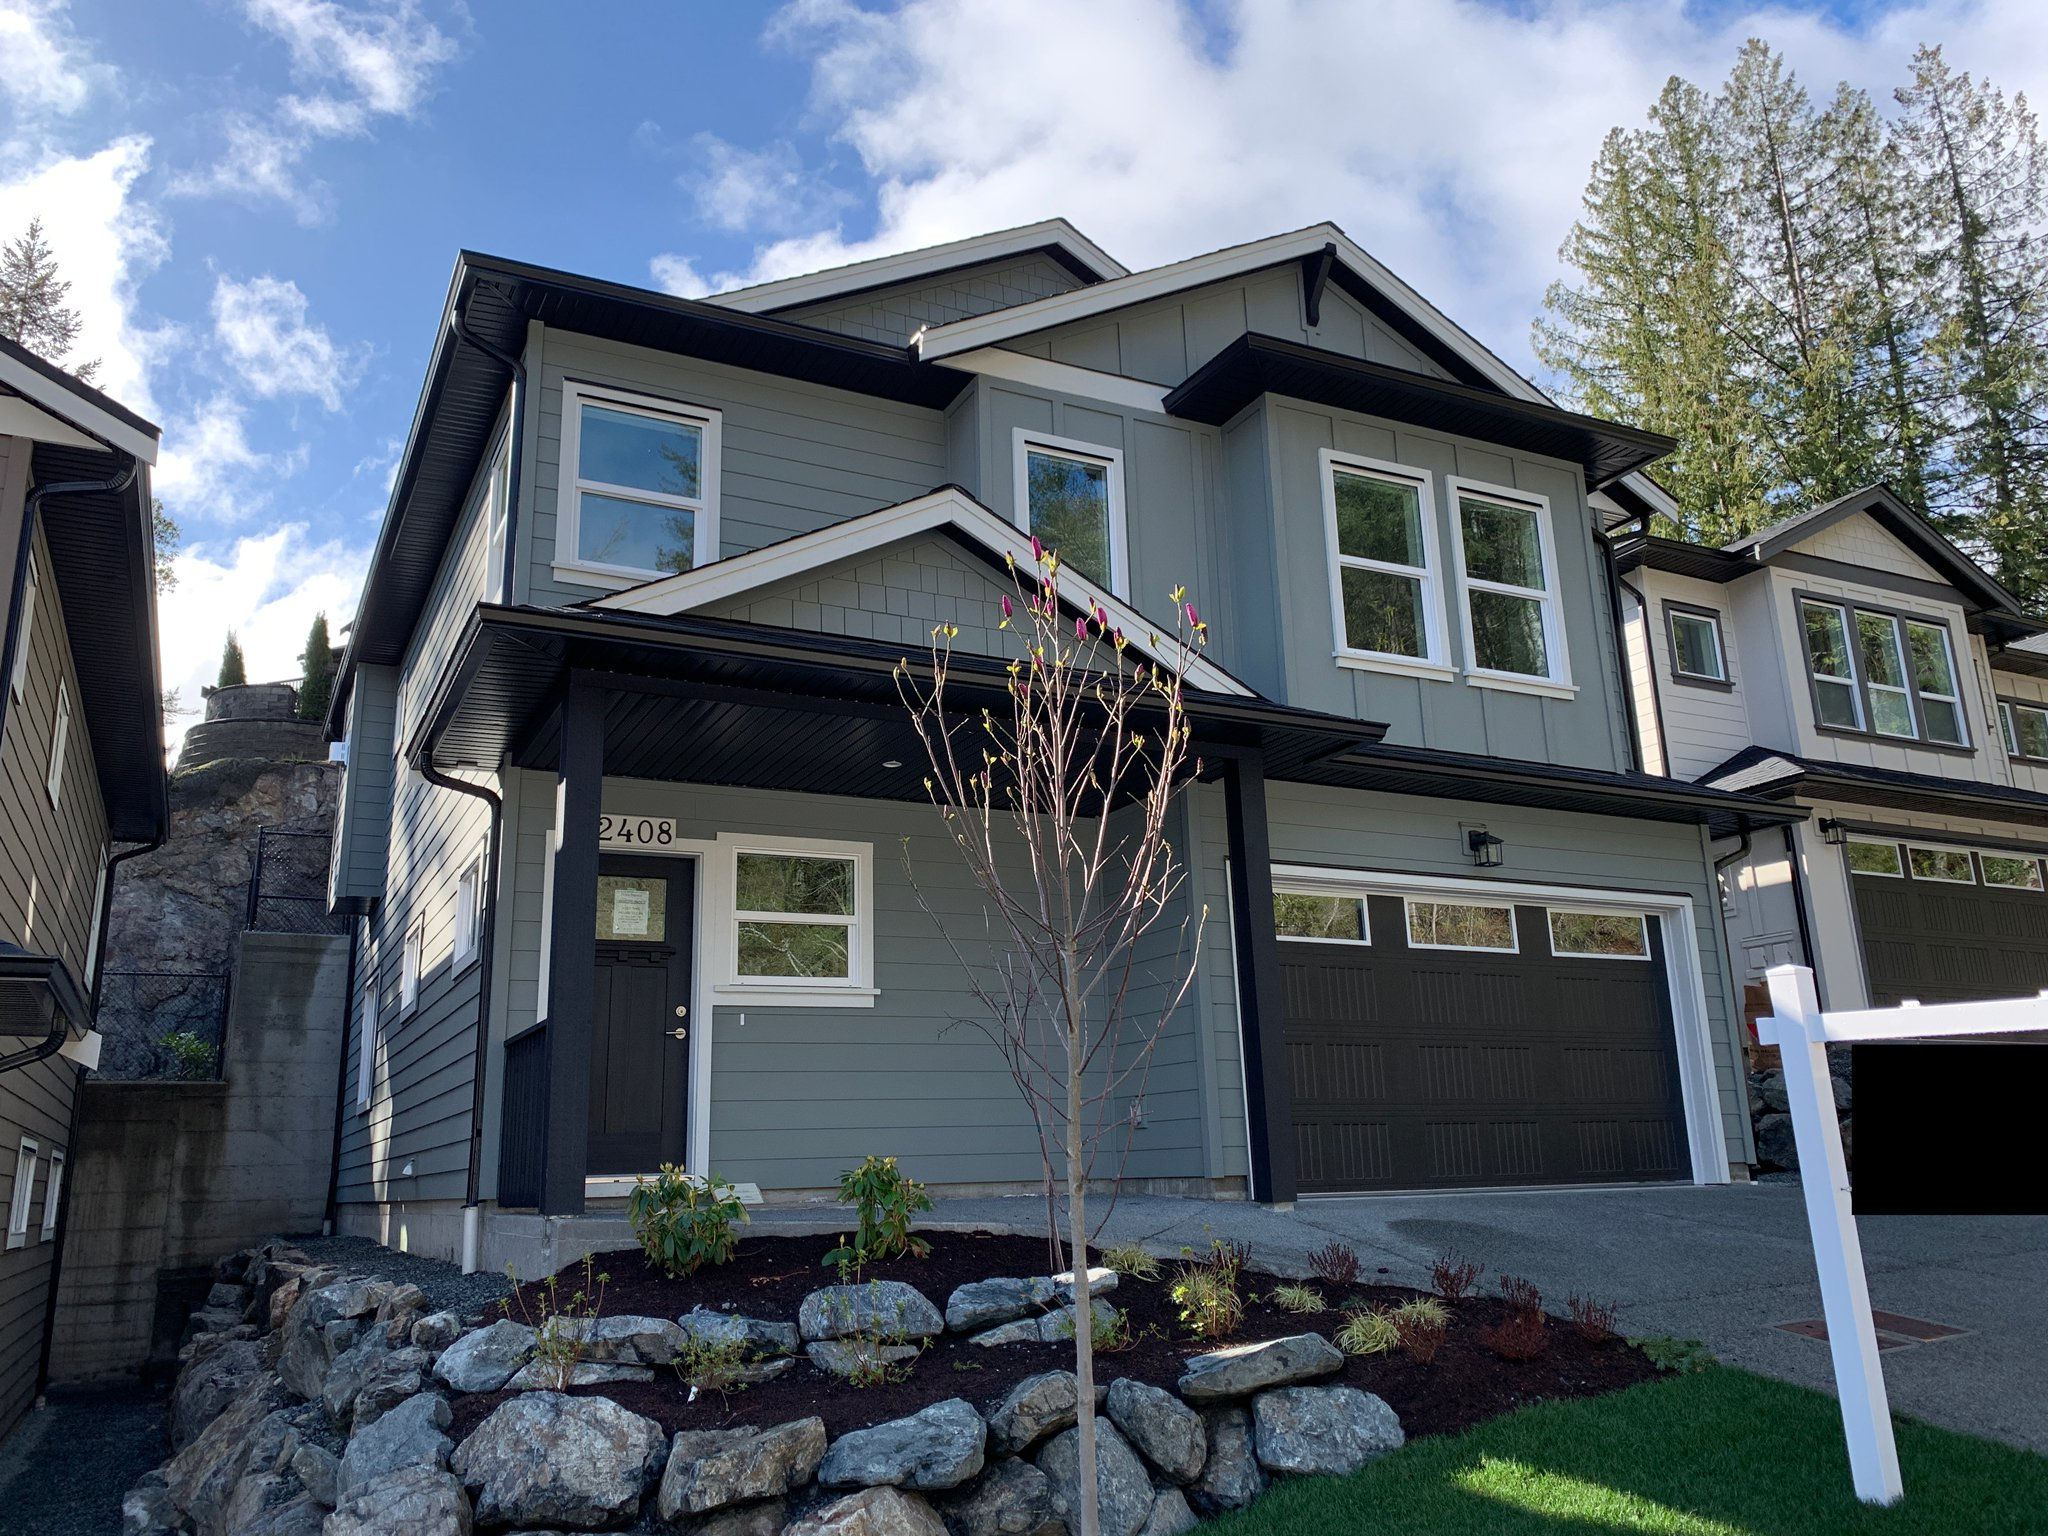 Main Photo: 2408 Chilco Road in : VR Six Mile Single Family Detached for sale (View Royal)  : MLS®# 408100